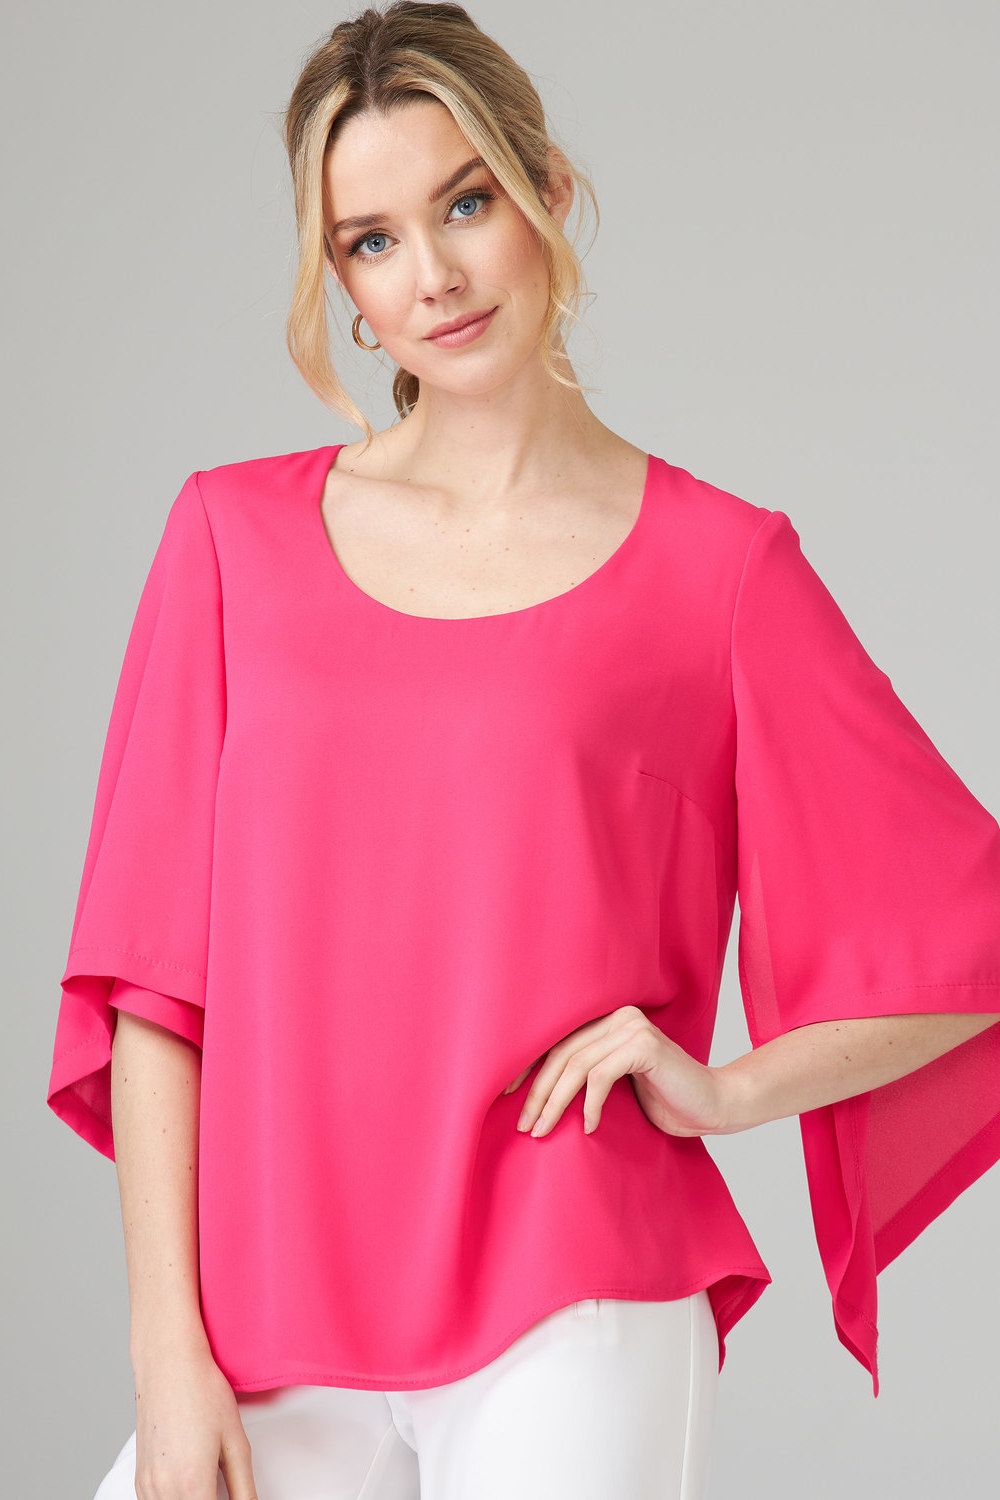 Joseph Ribkoff HYPER PINK Tees & Camis Style 201242